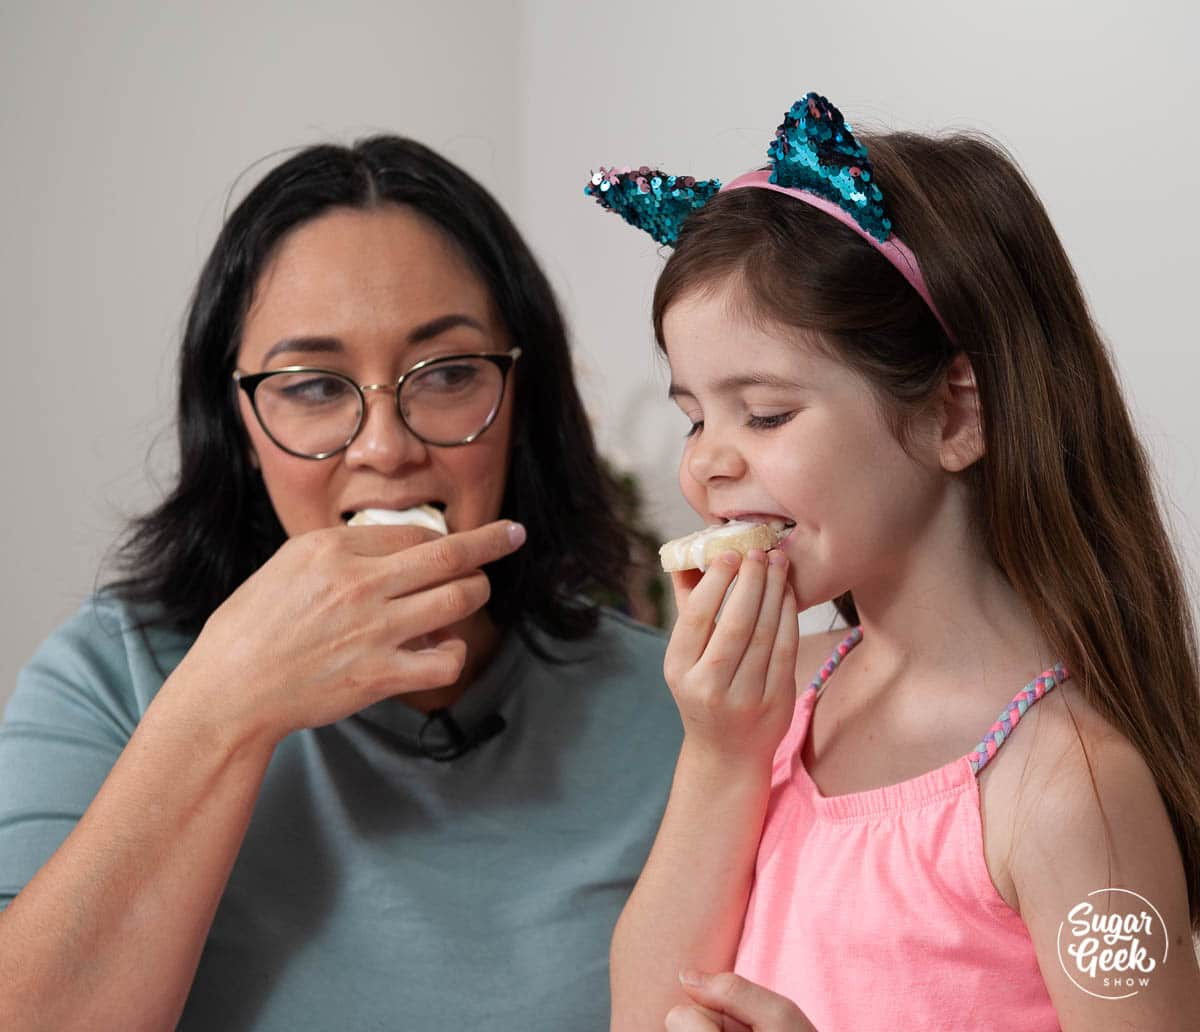 woman and girl biting into lemon shortbread cookies